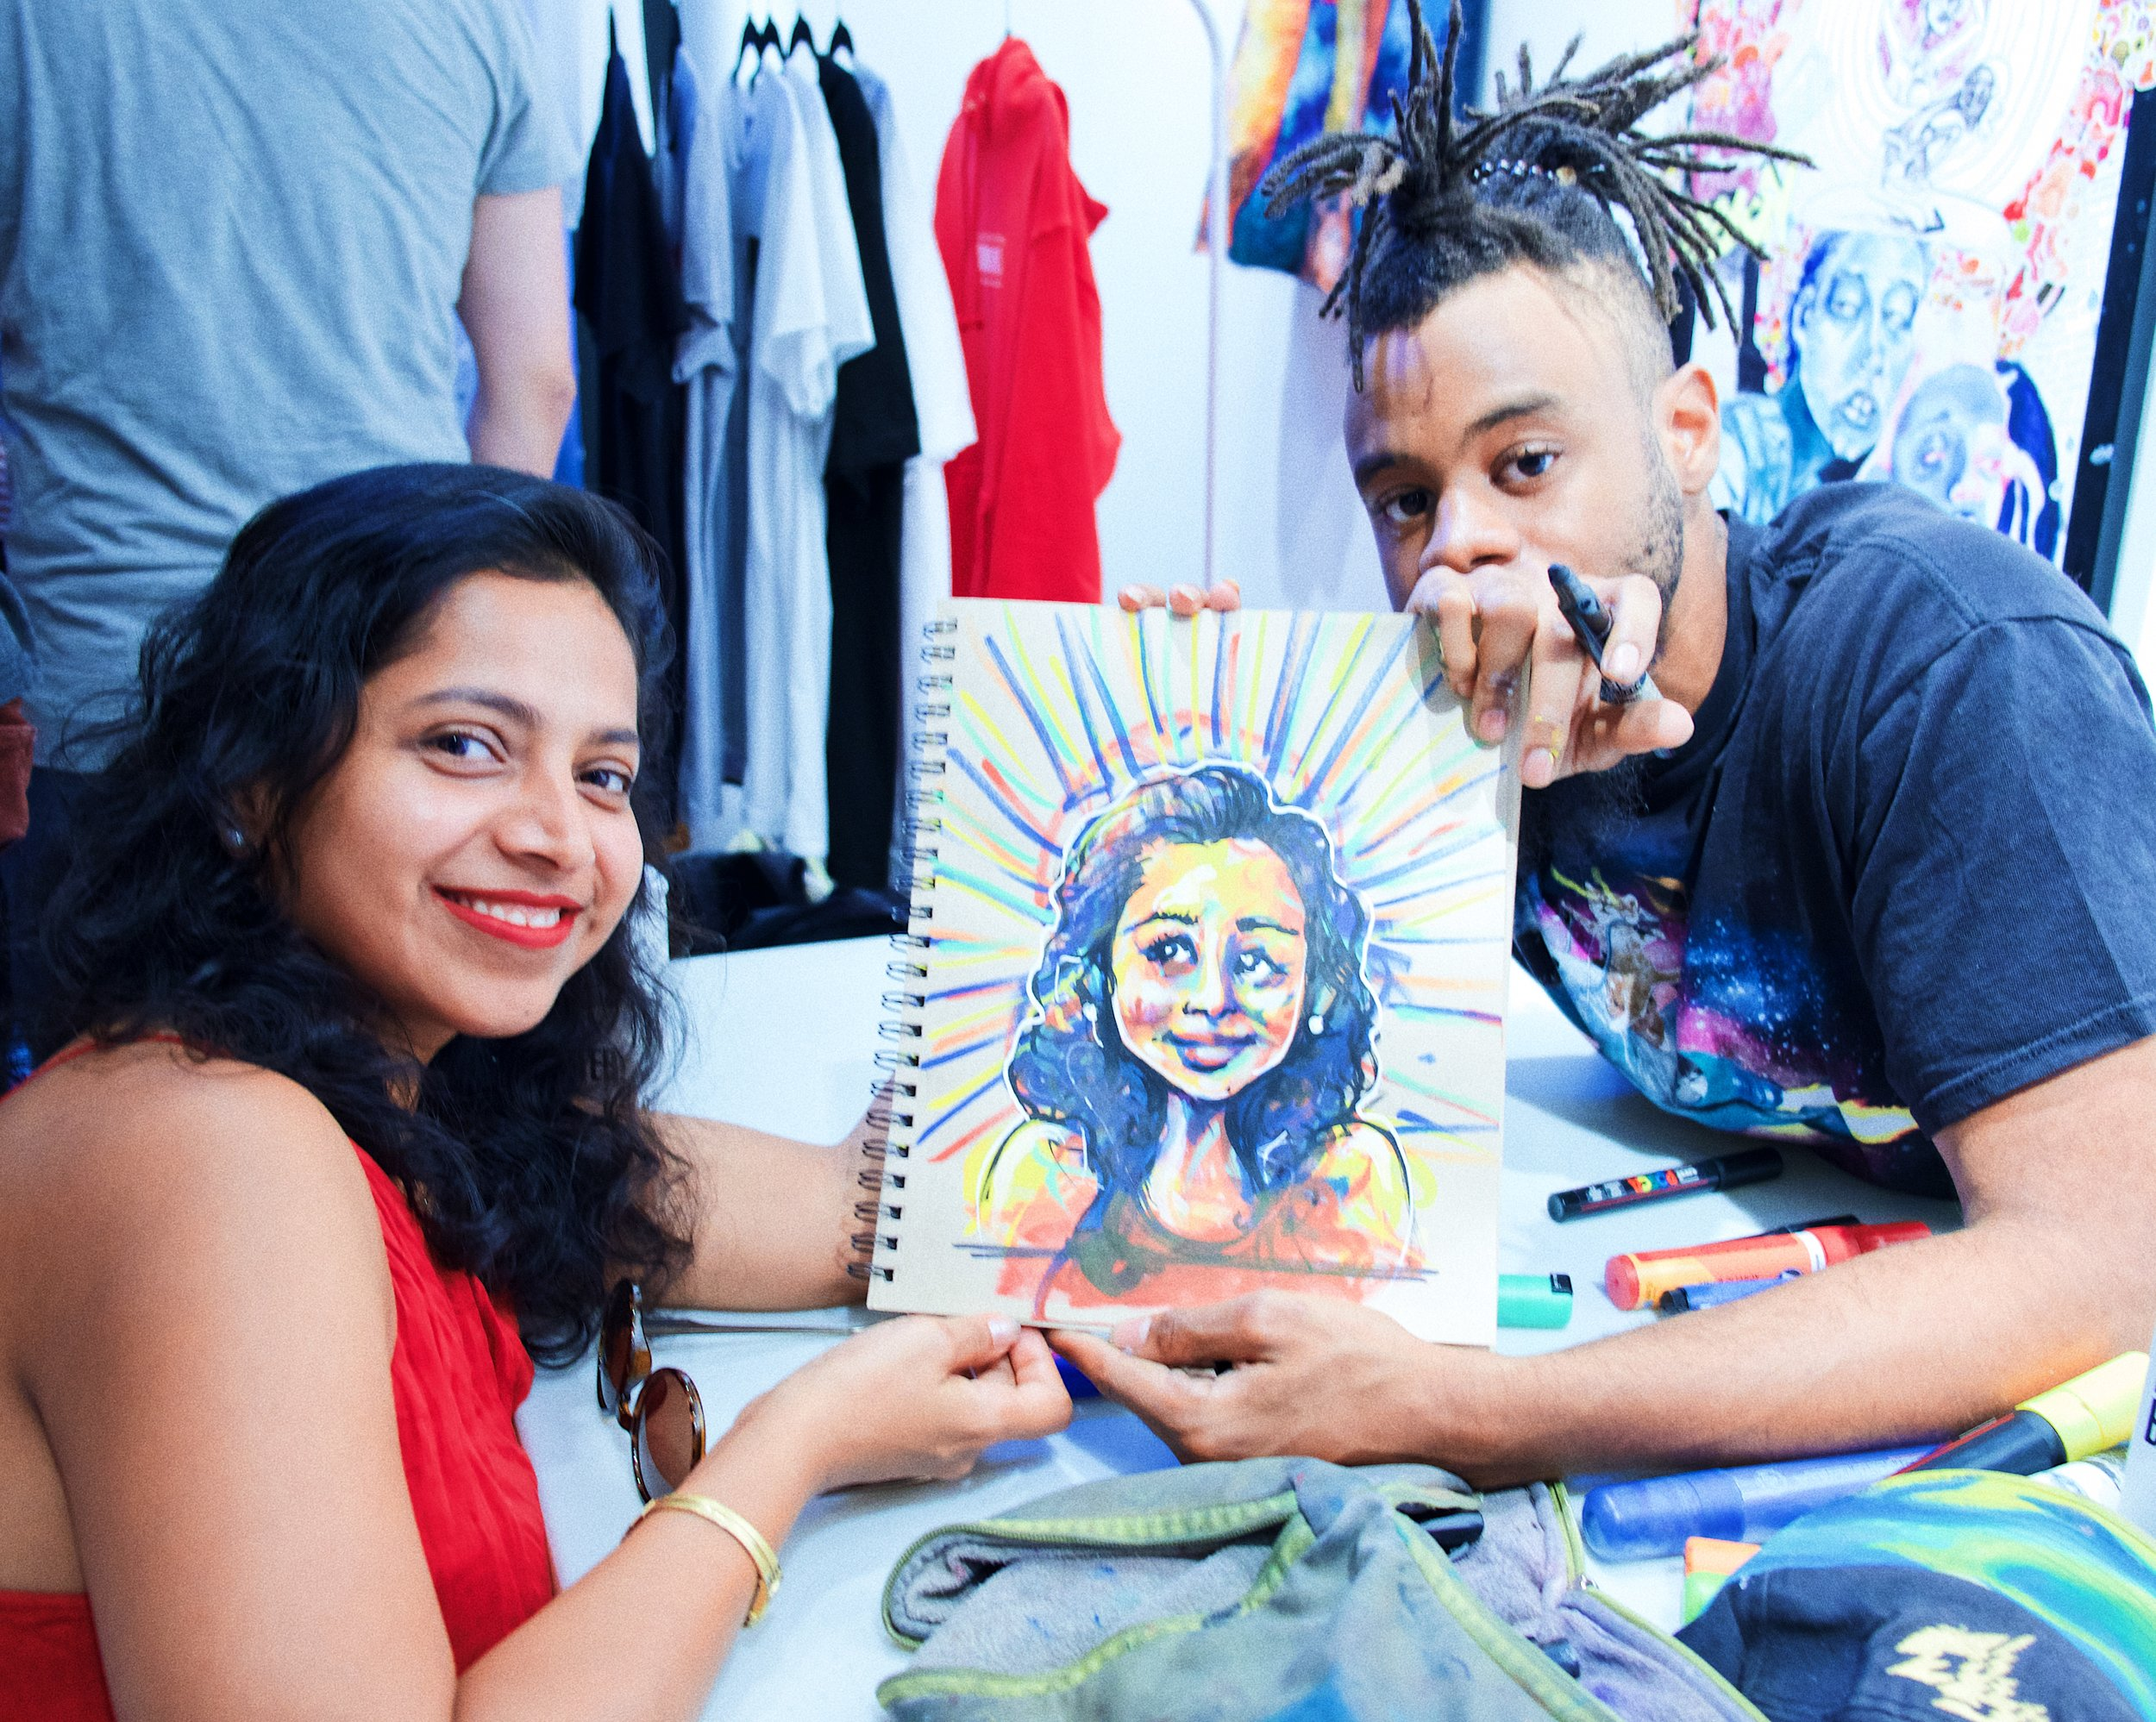 Kahiem Archer did portraits of the guests all evening - here's fitness entrepreneur, Auroshikha, of Zydness is loves her masterpiece.